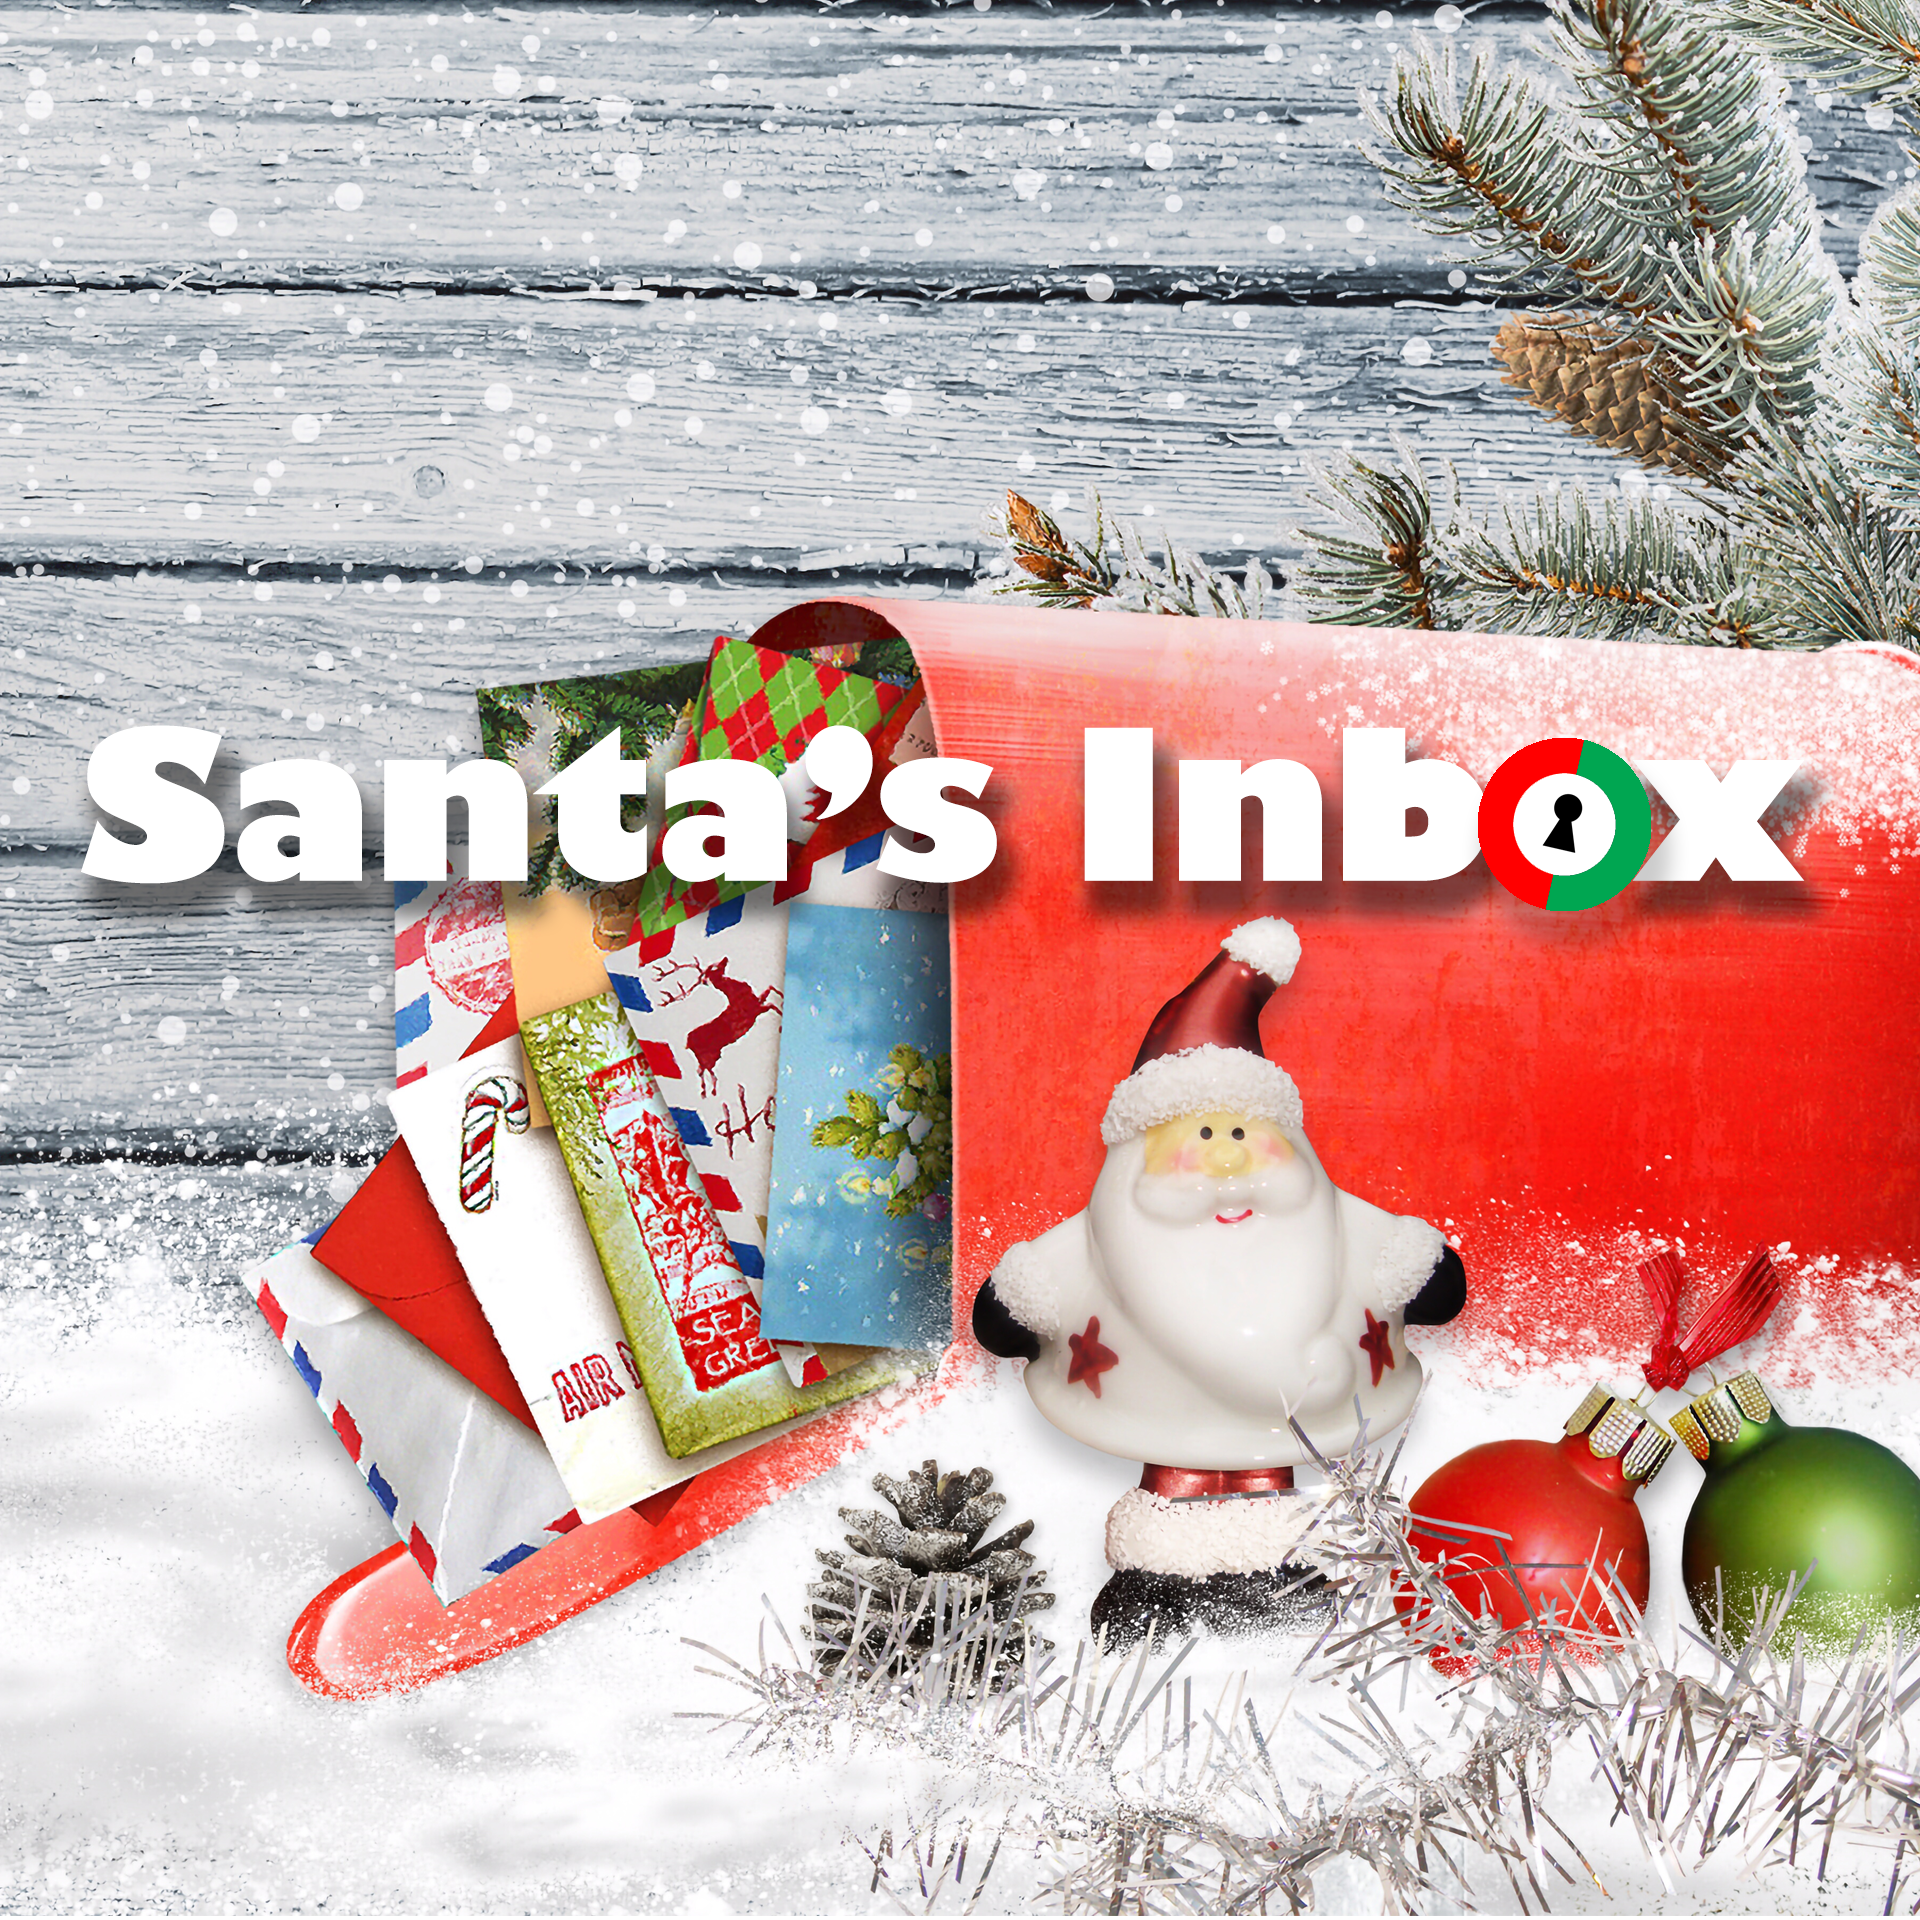 Santa's Inbox Escape Room